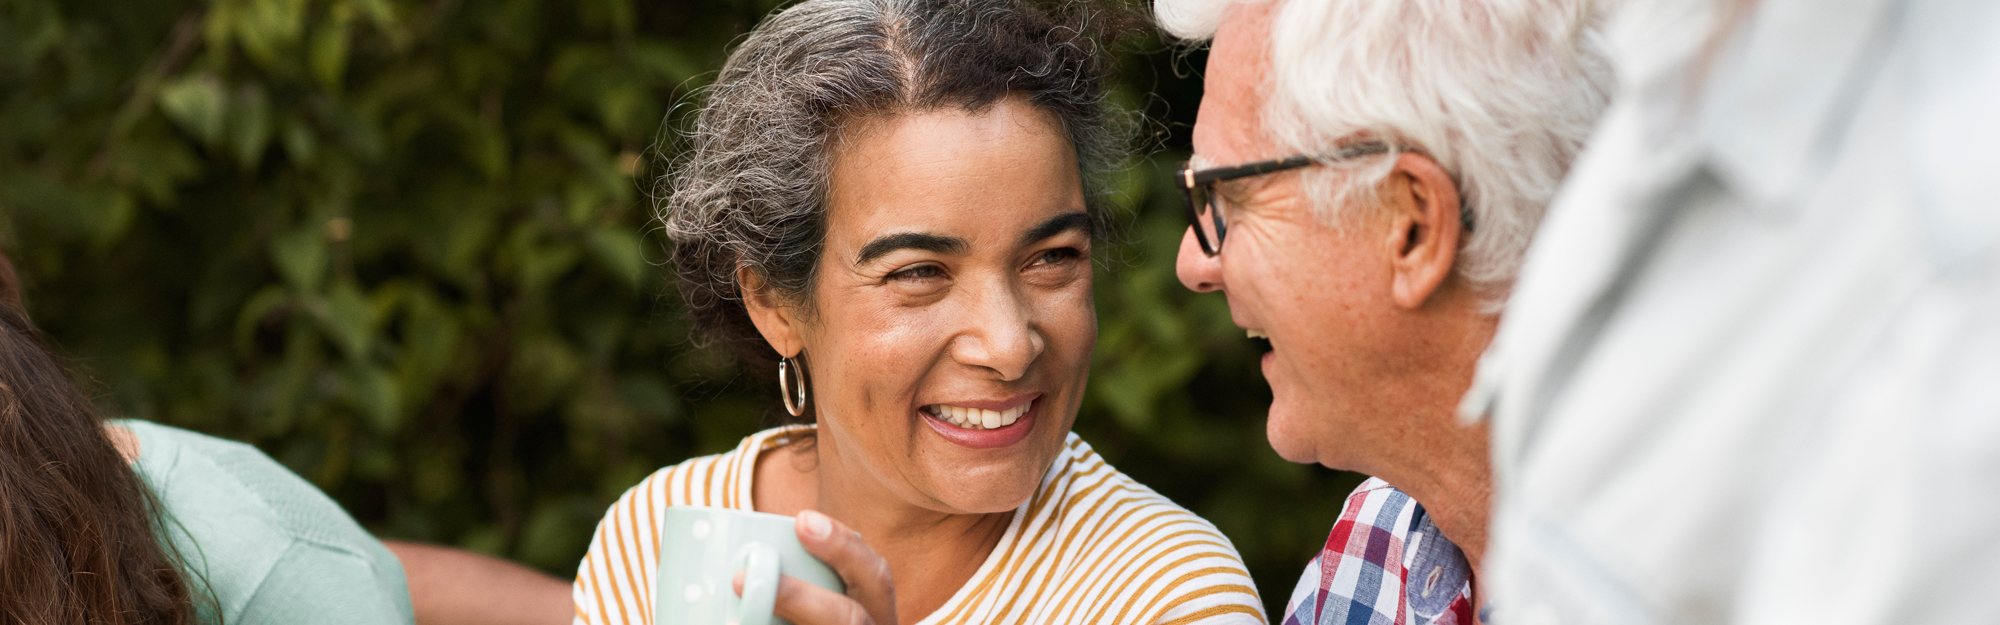 Smiling woman holding coffee cup with older man.